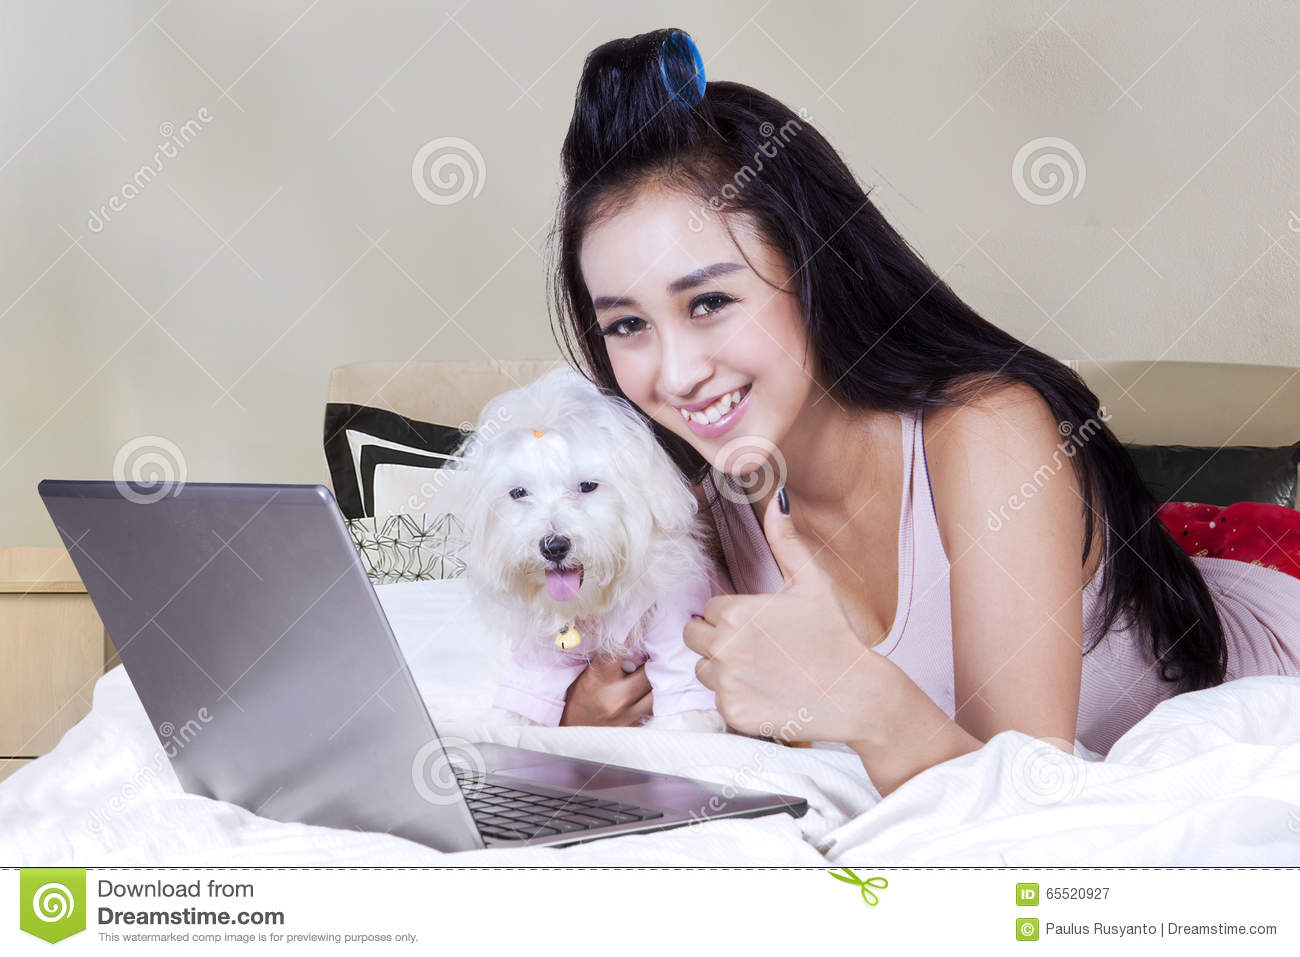 Female model with dog and notebook on bed